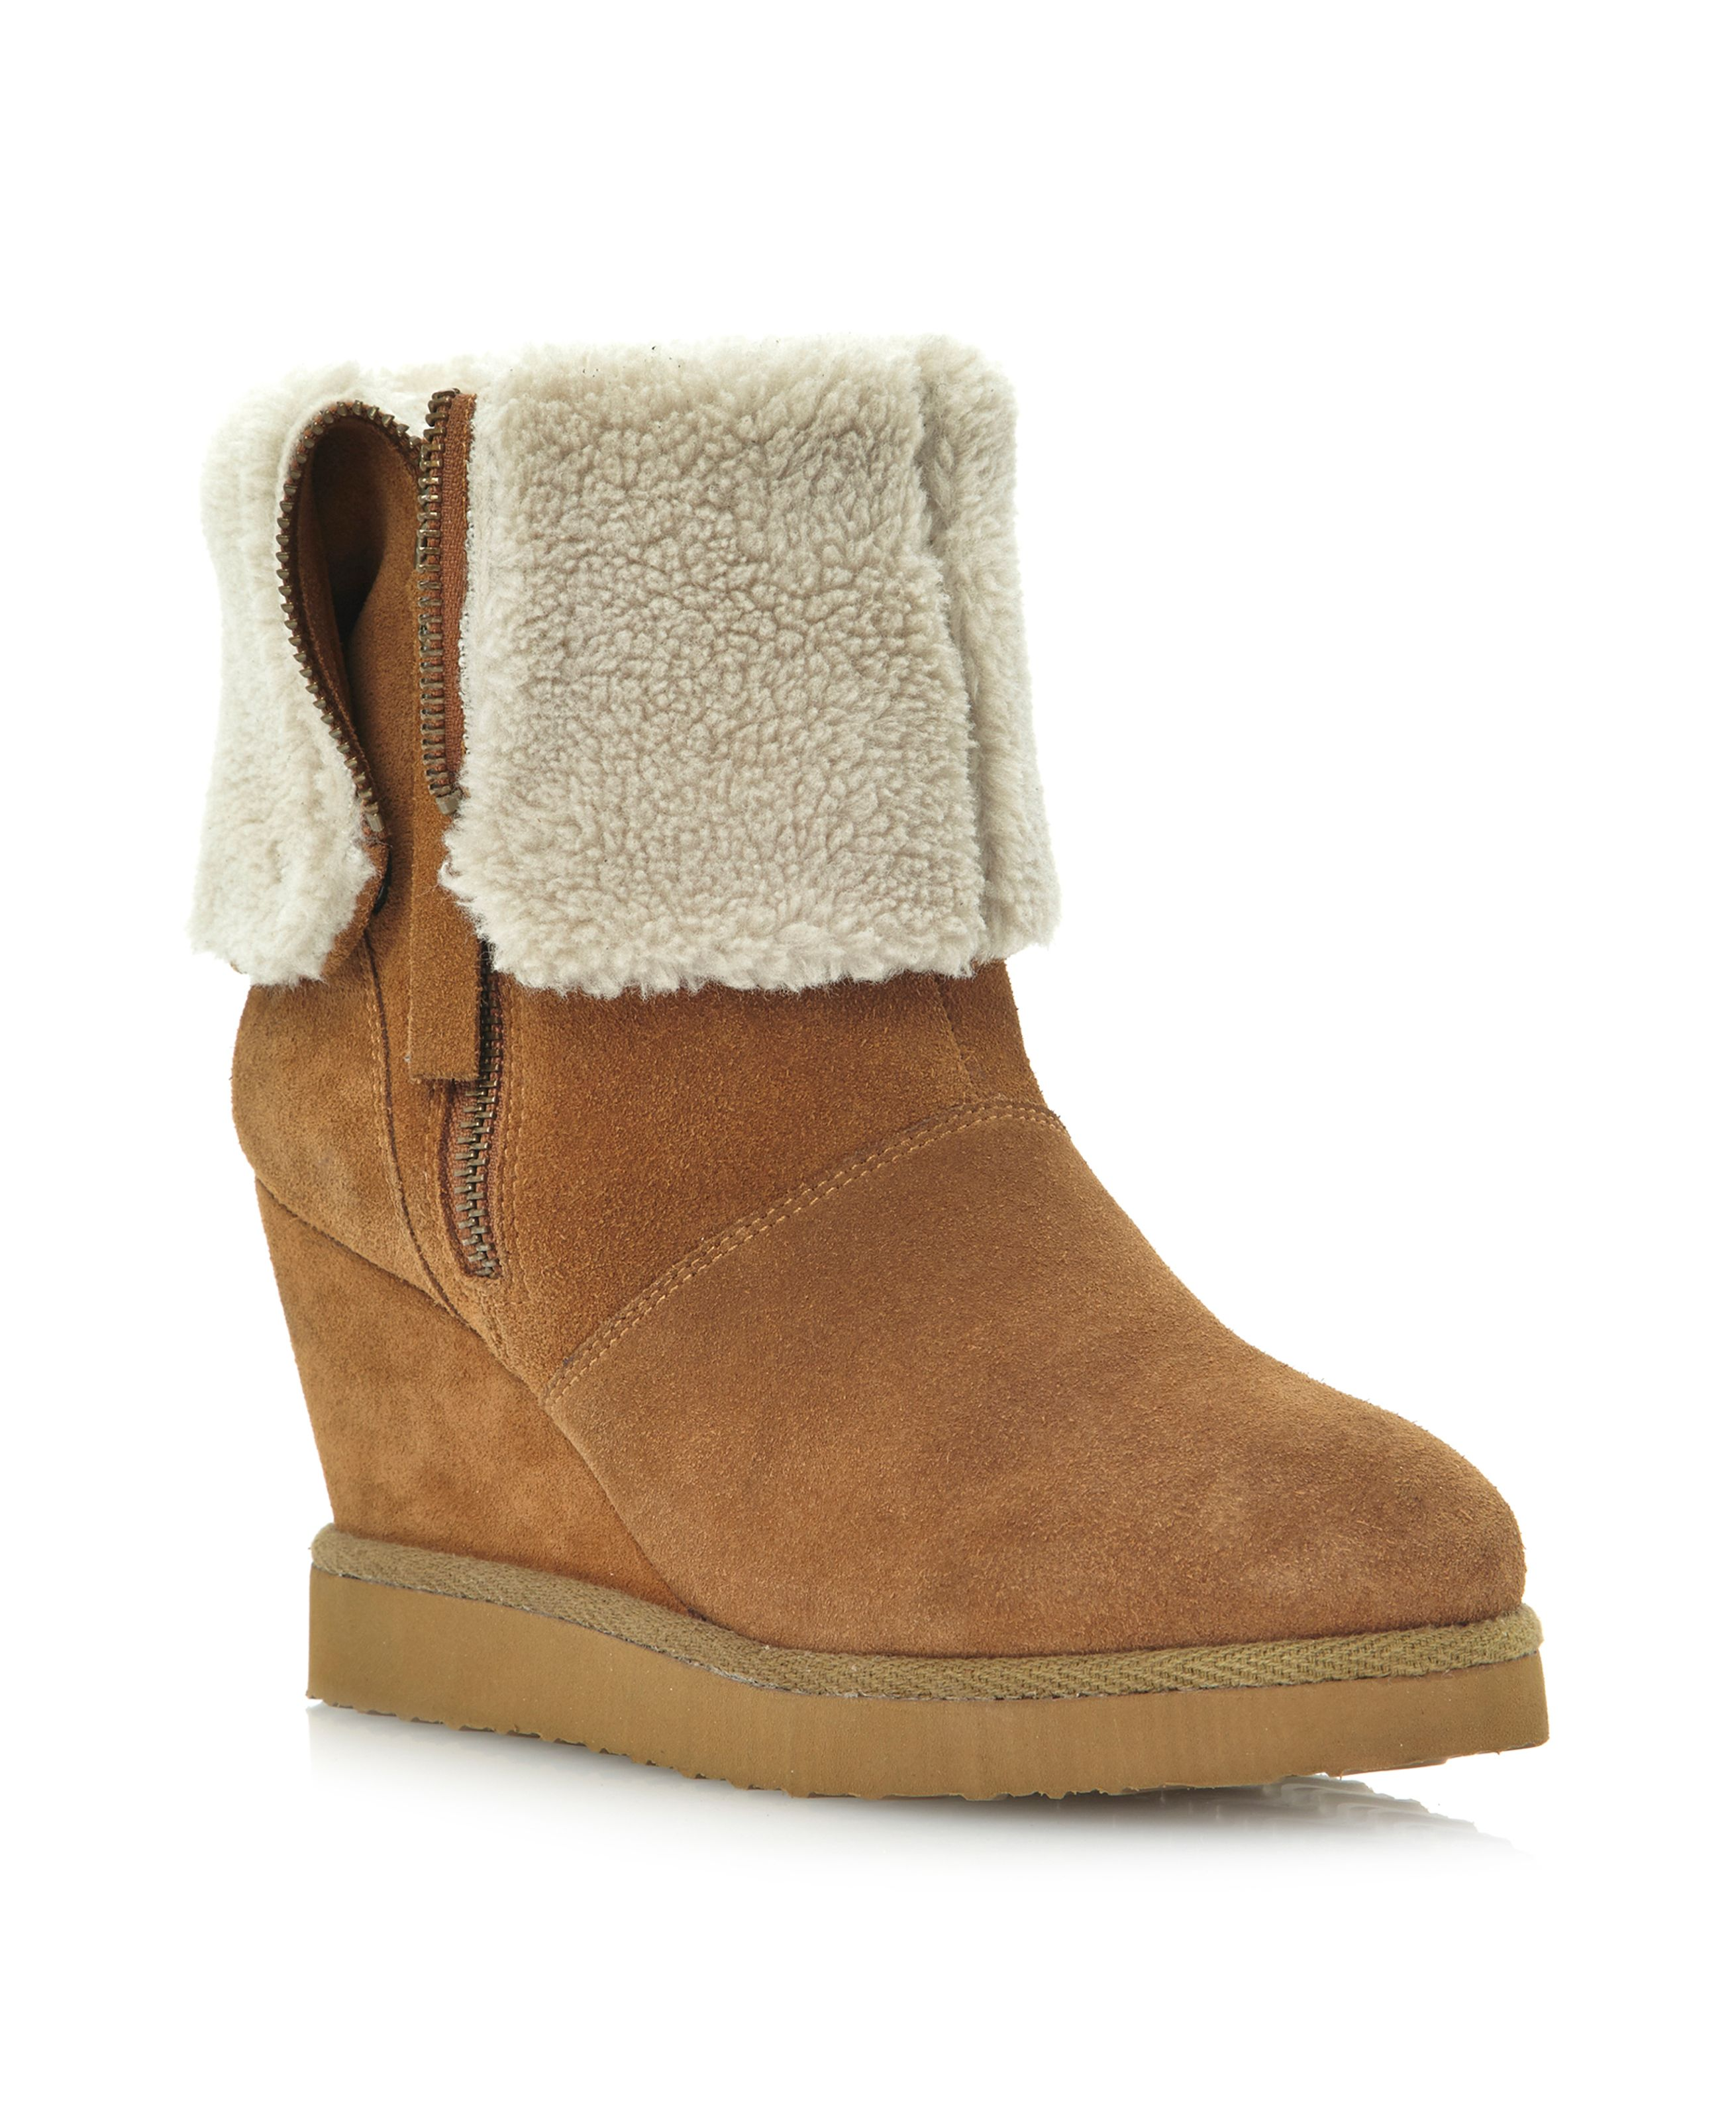 dune reach side zipfold wedge boots in brown lyst